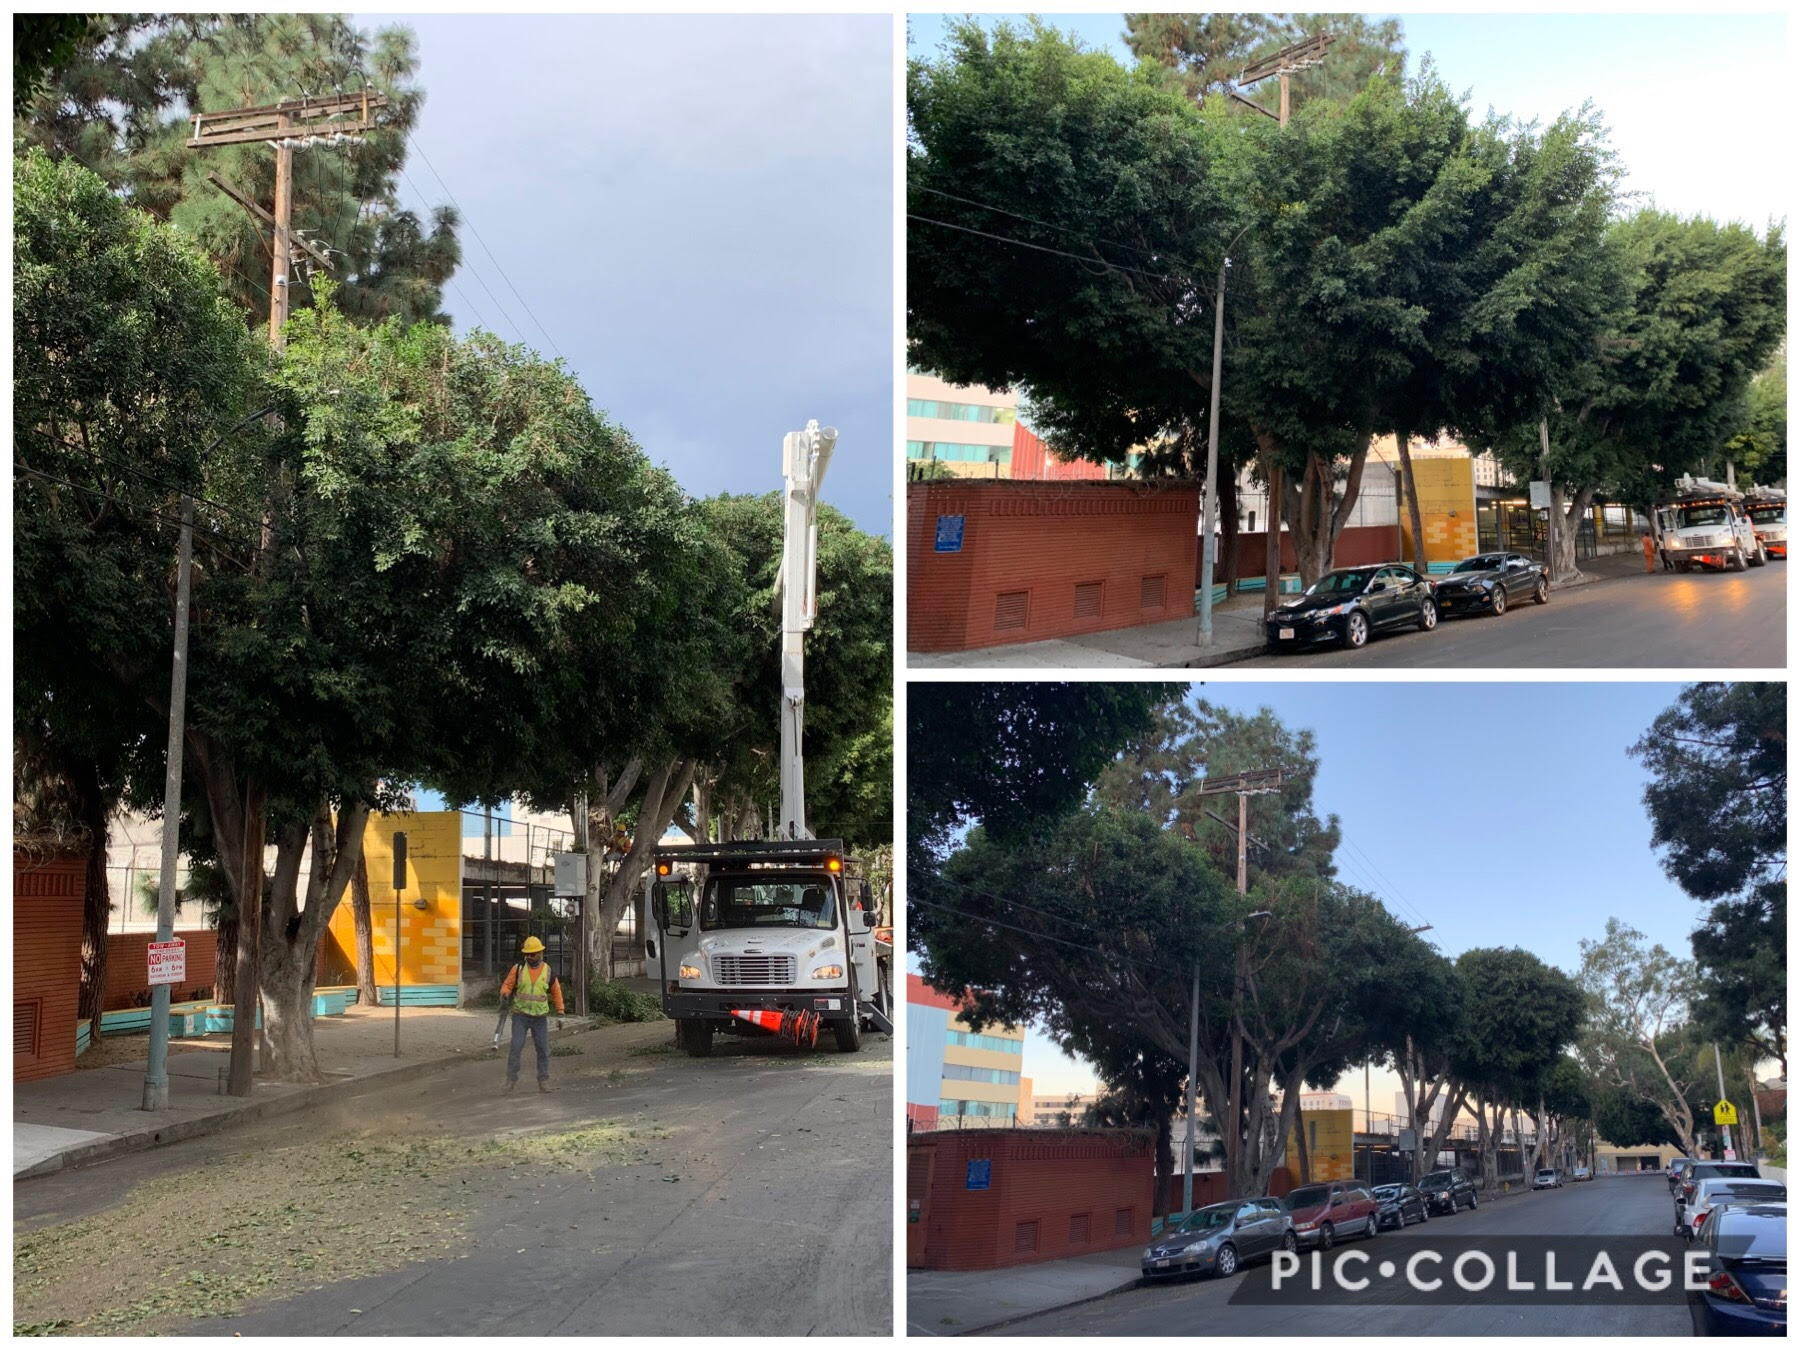 5th St. Tree Trimming in Pico Union